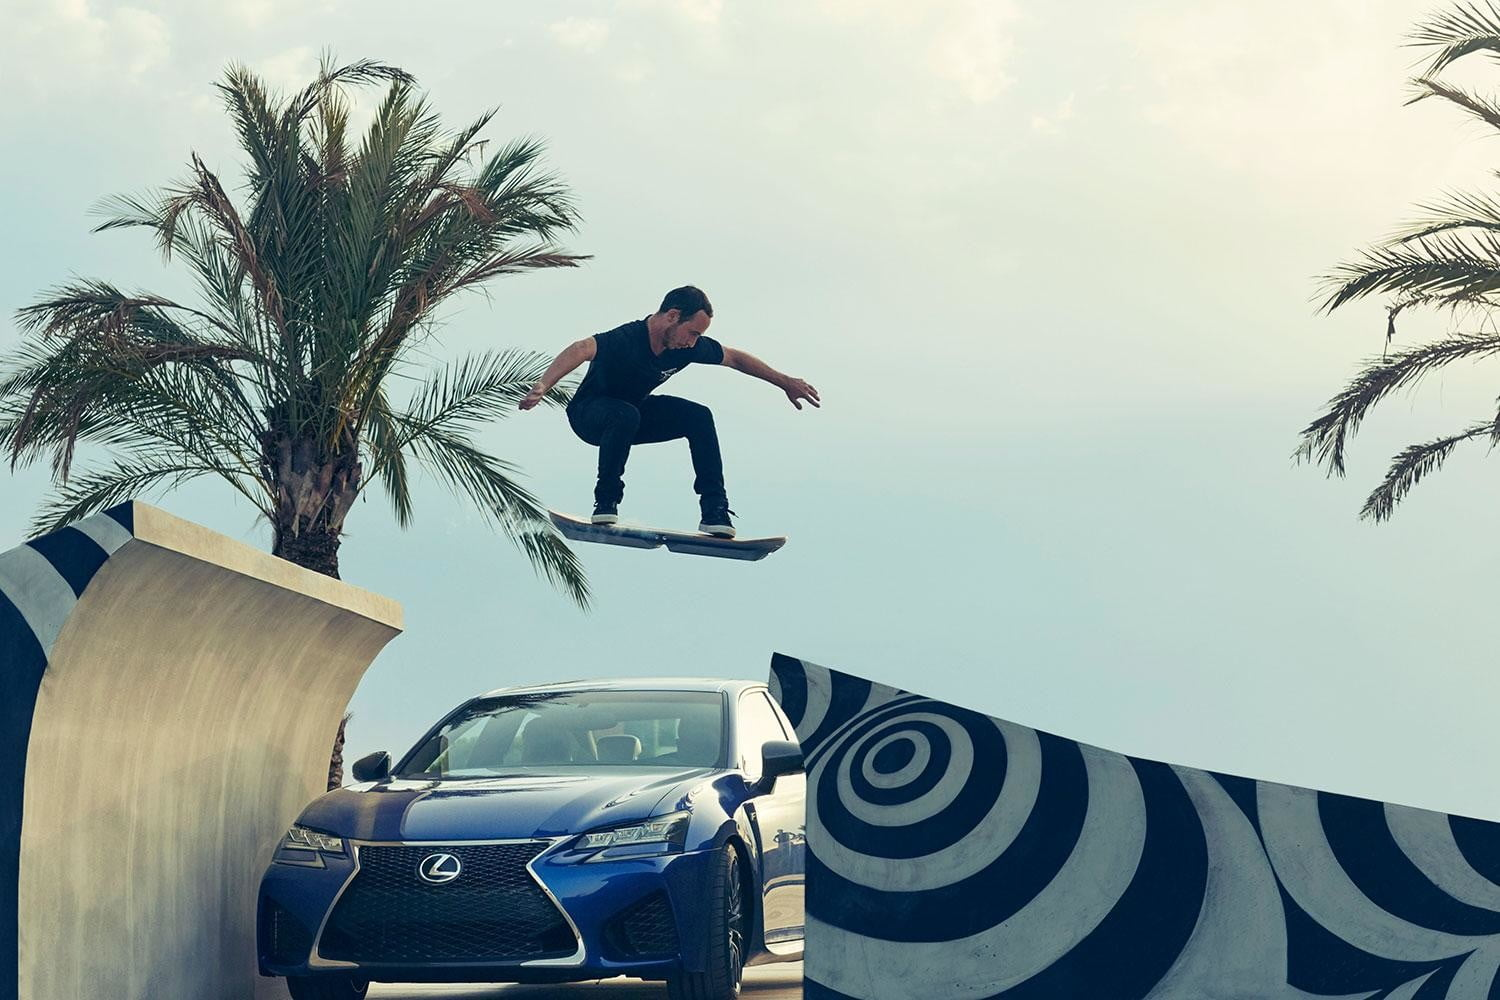 lexus hoverboard news pictures video slide hoverpark 11